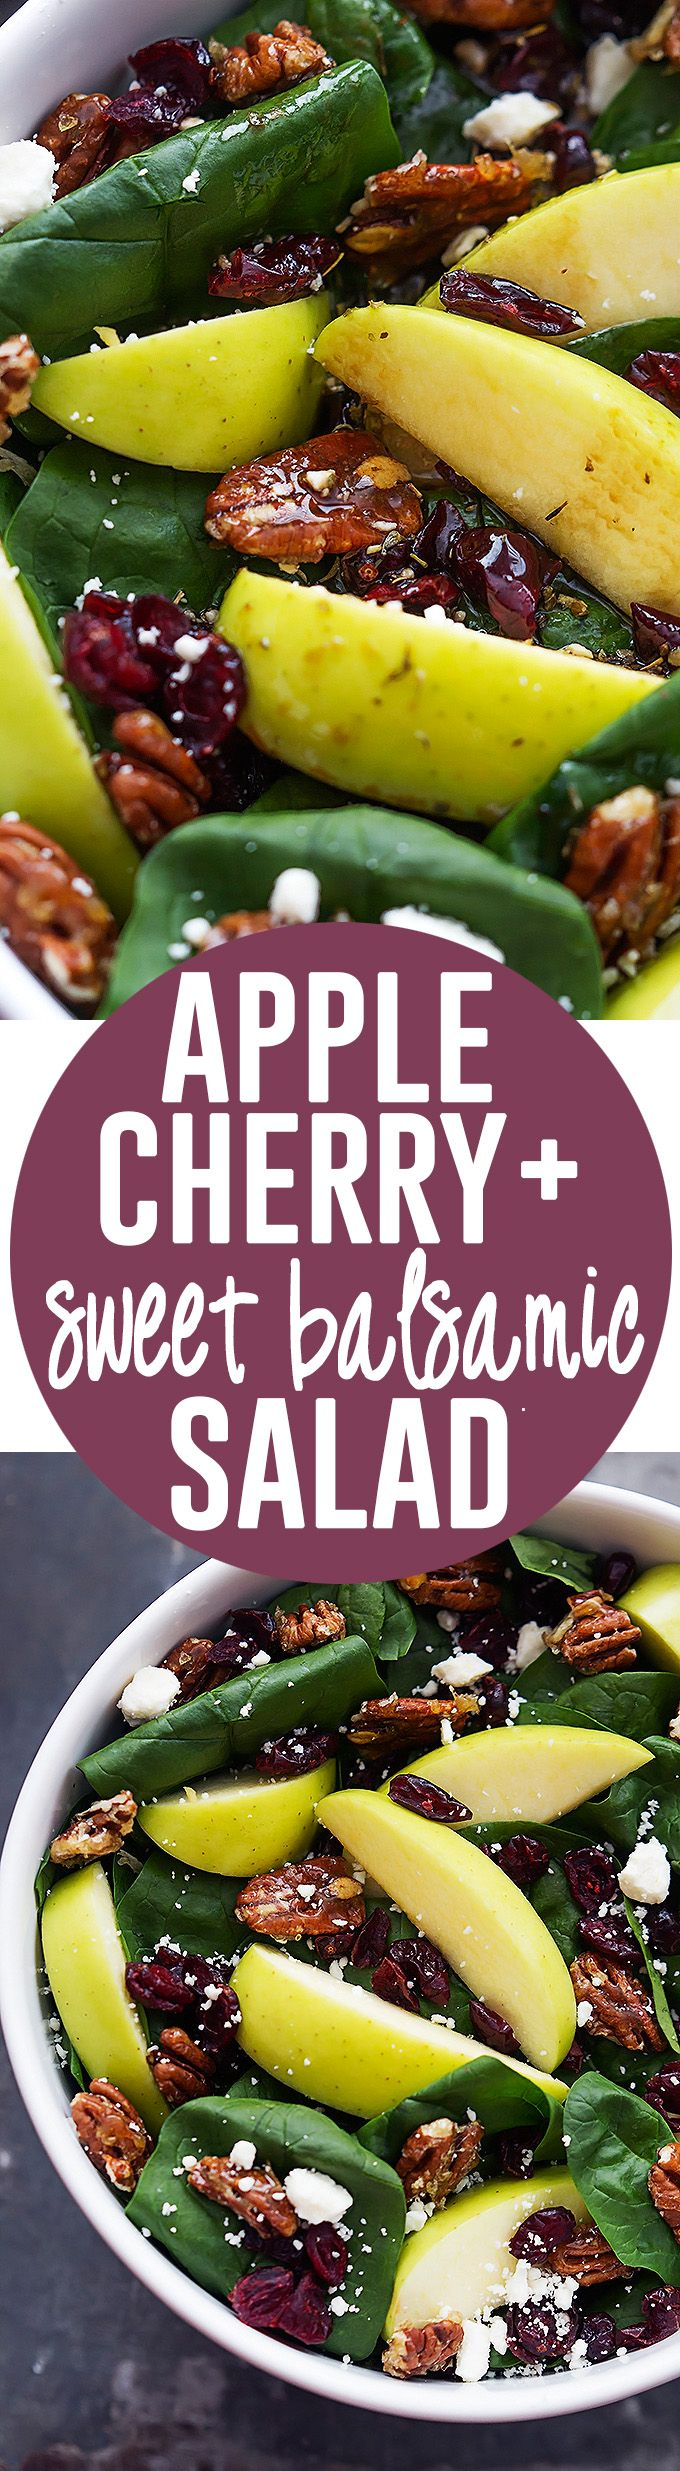 Apple Cherry Candied Pecan Salad with Sweet Balsamic Dressing | Creme ...